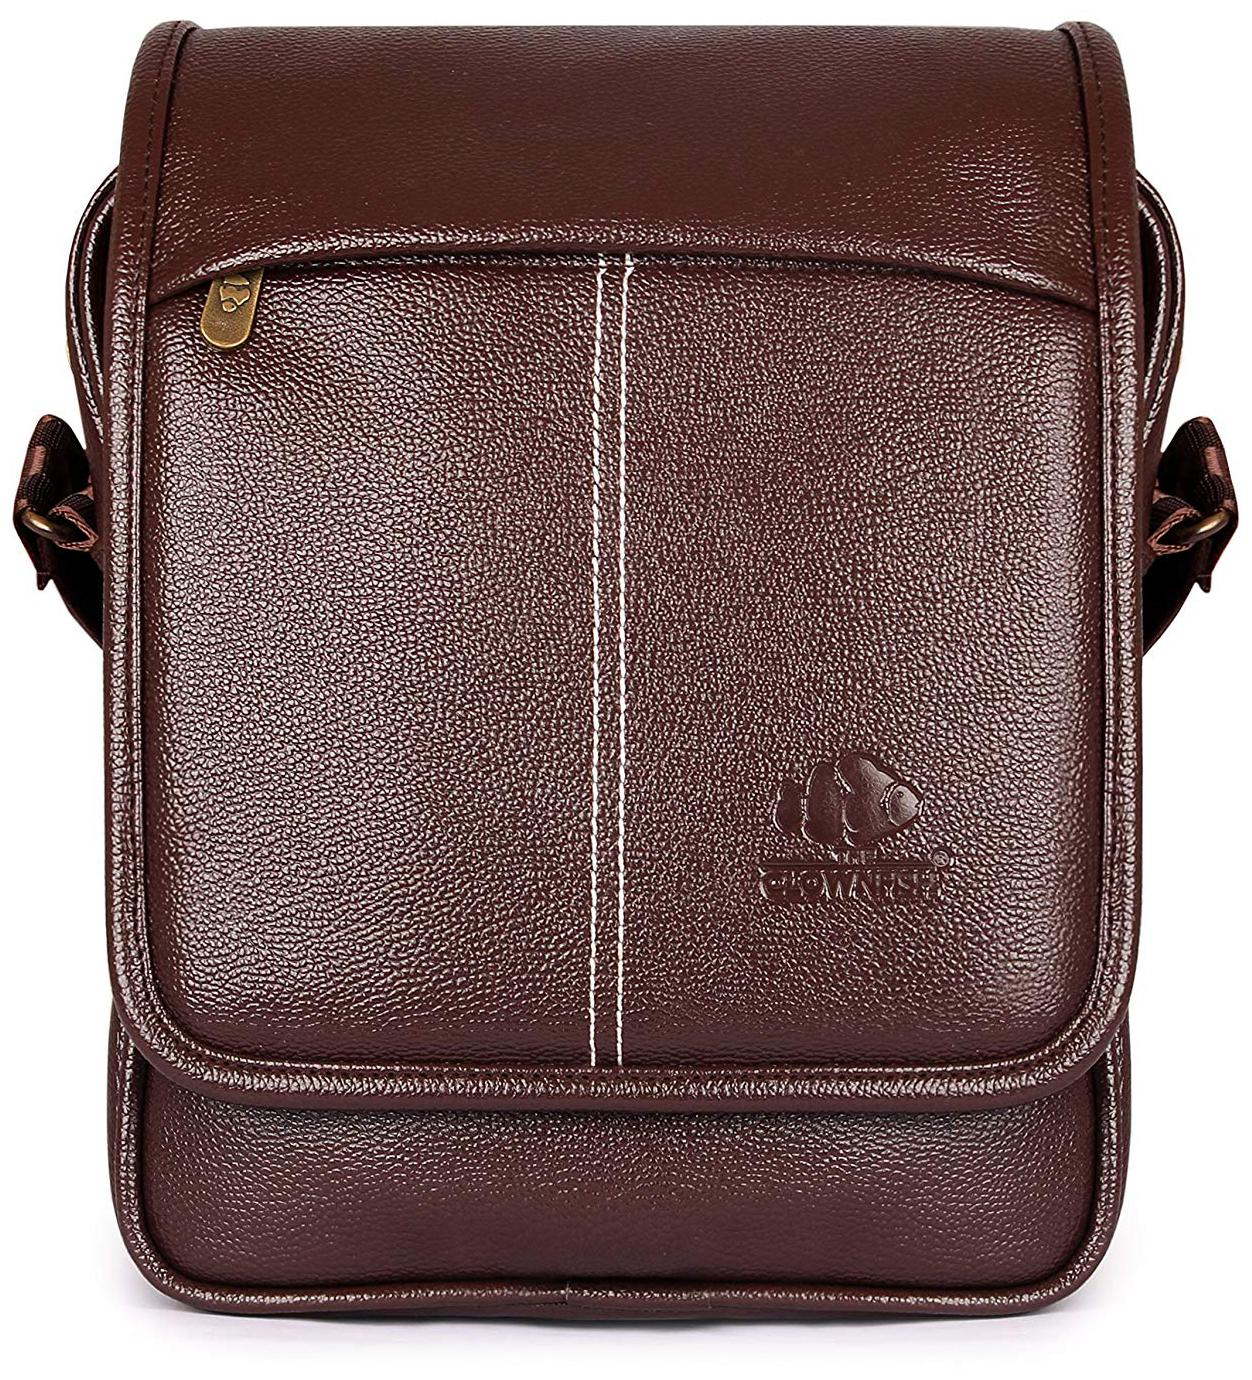 The Clownfish Sling Bags Brown by Sky Venture